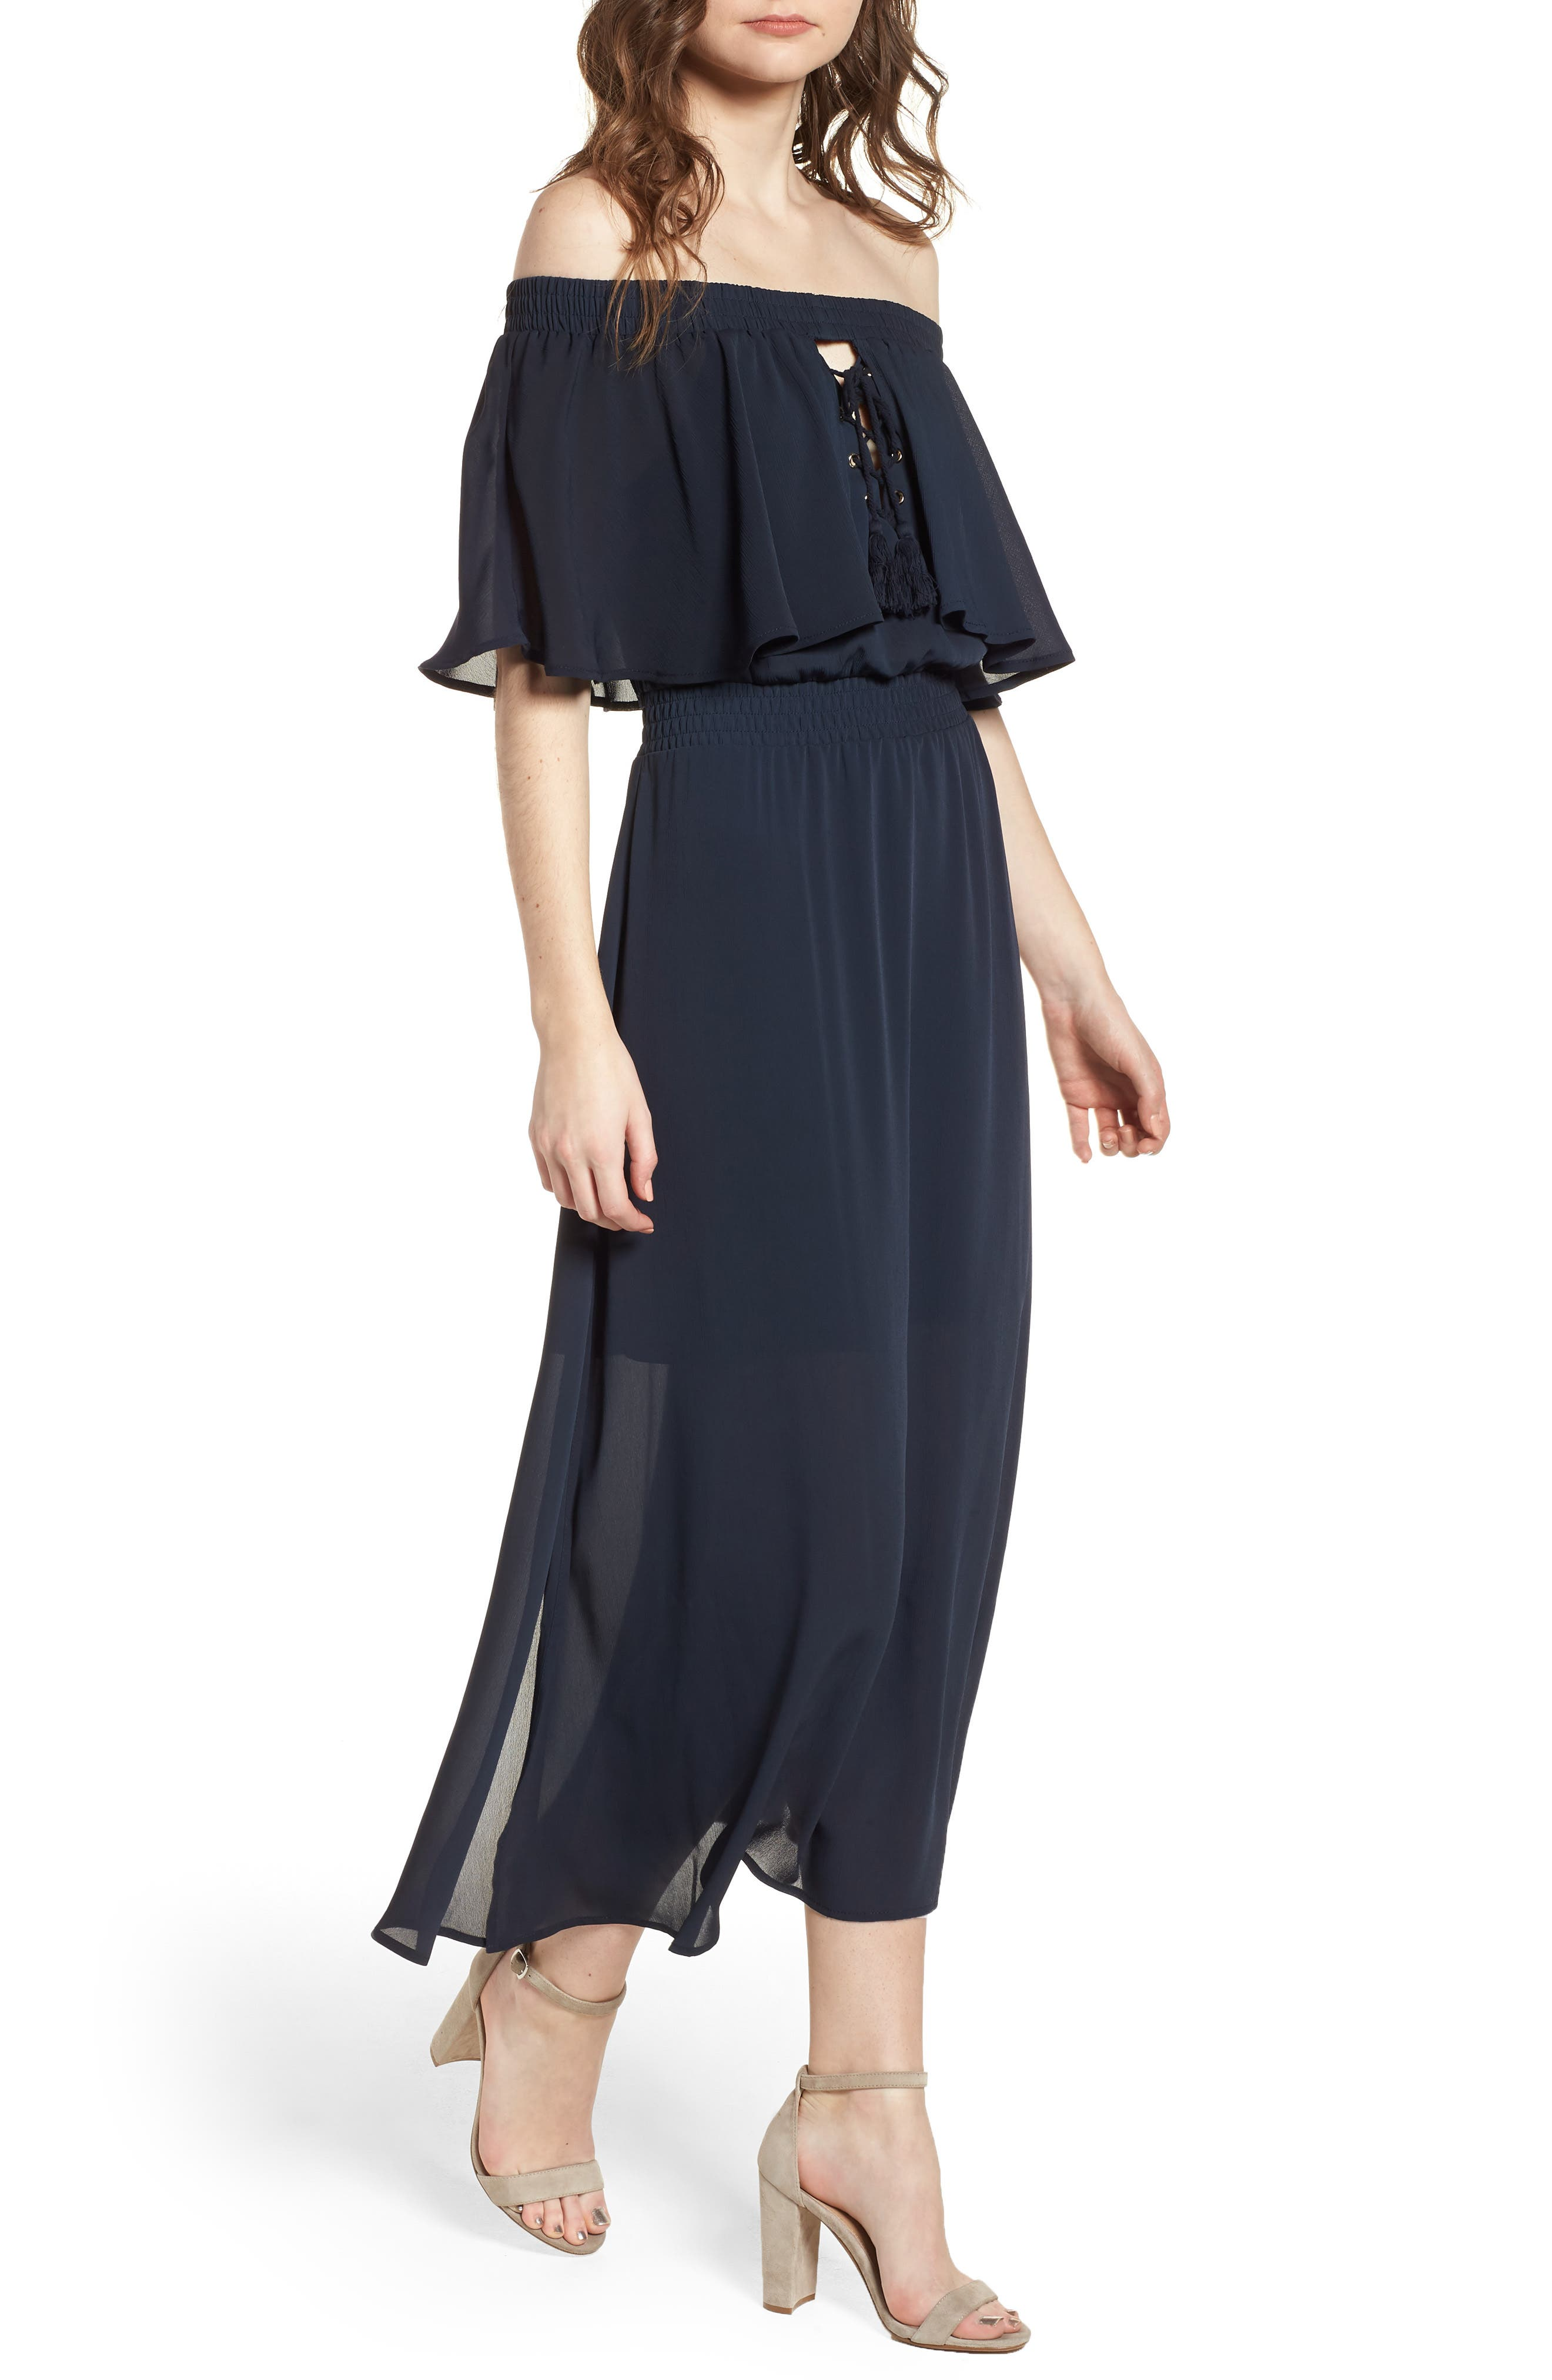 Touch the Sun Off the Shoulder Dress,                             Main thumbnail 1, color,